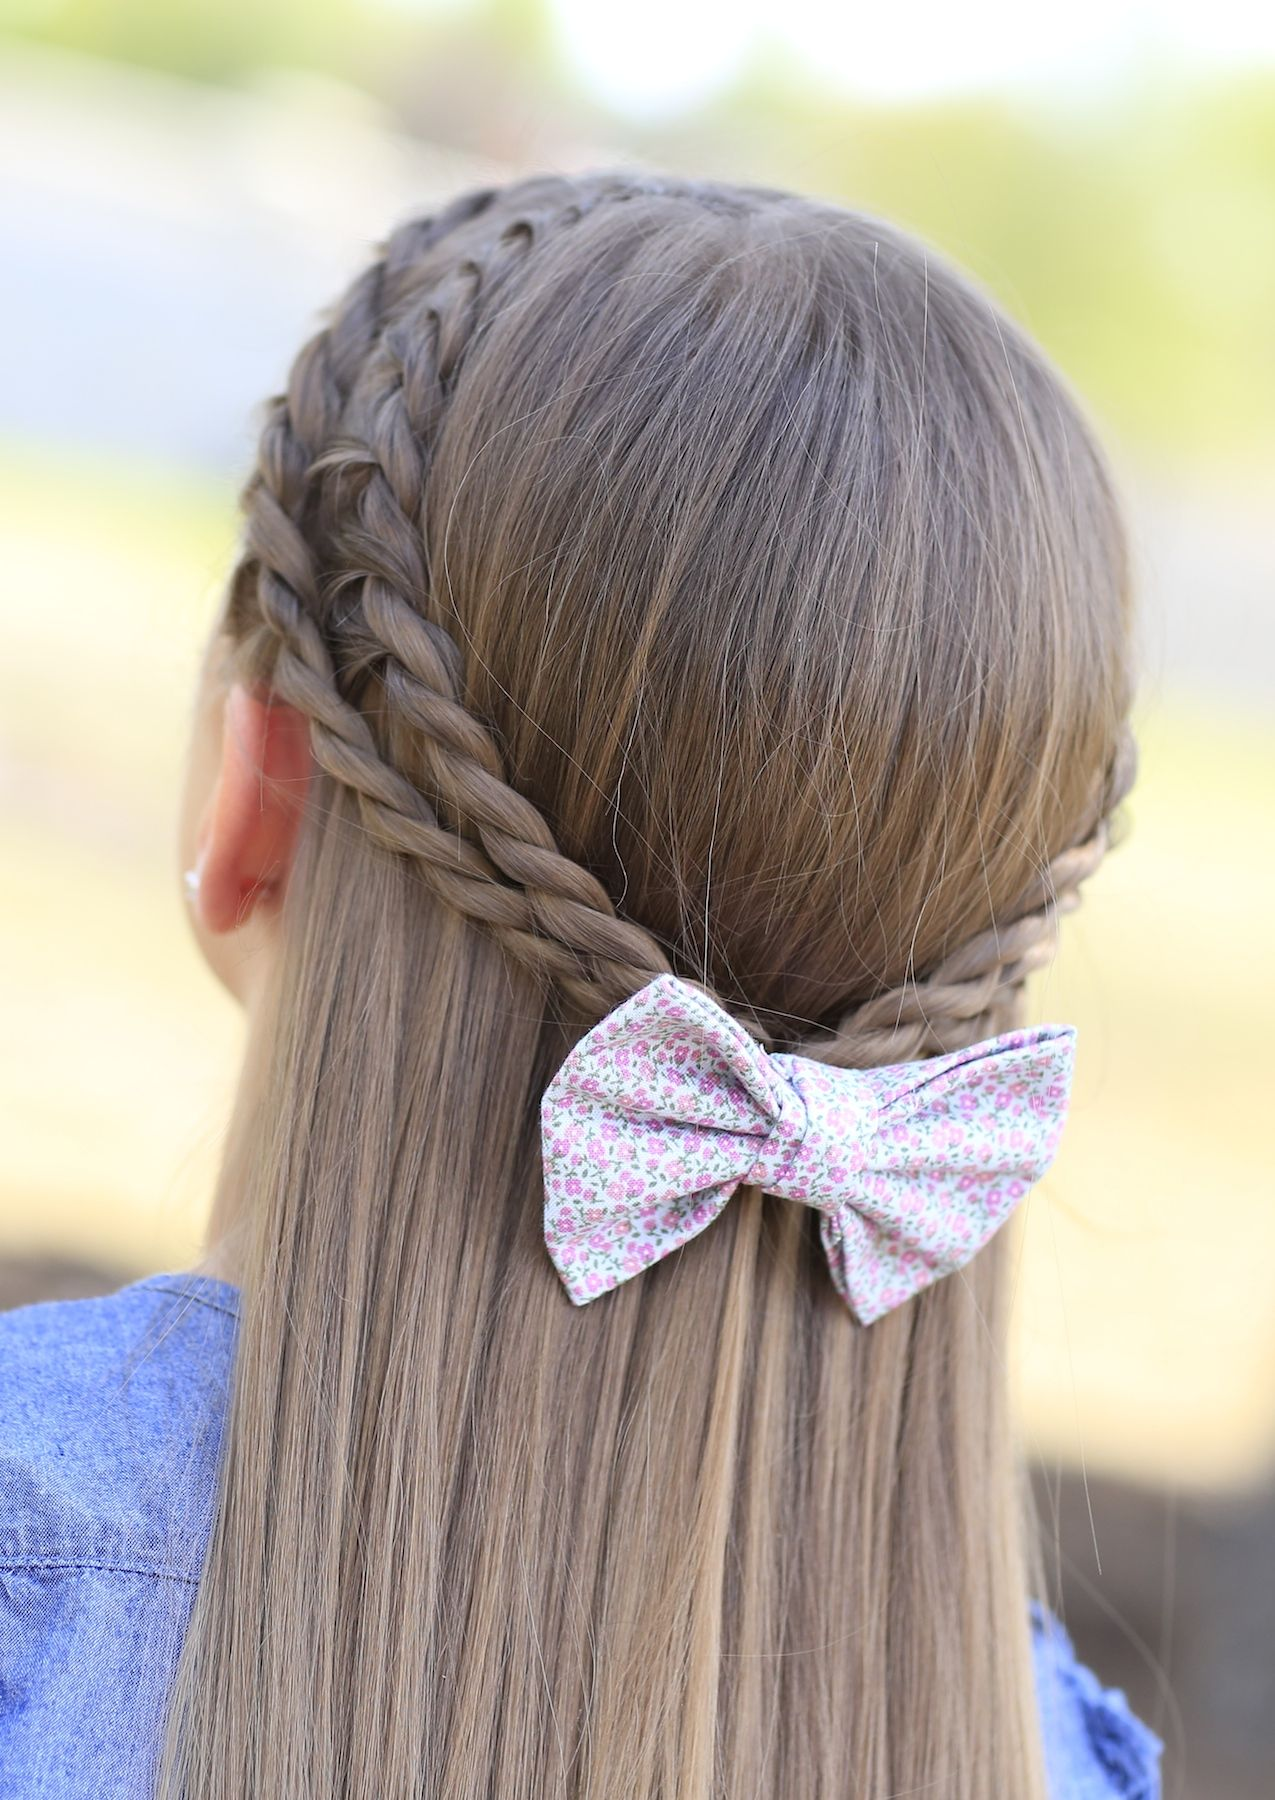 Rope braid tieback hairstyle and more hairstyles from